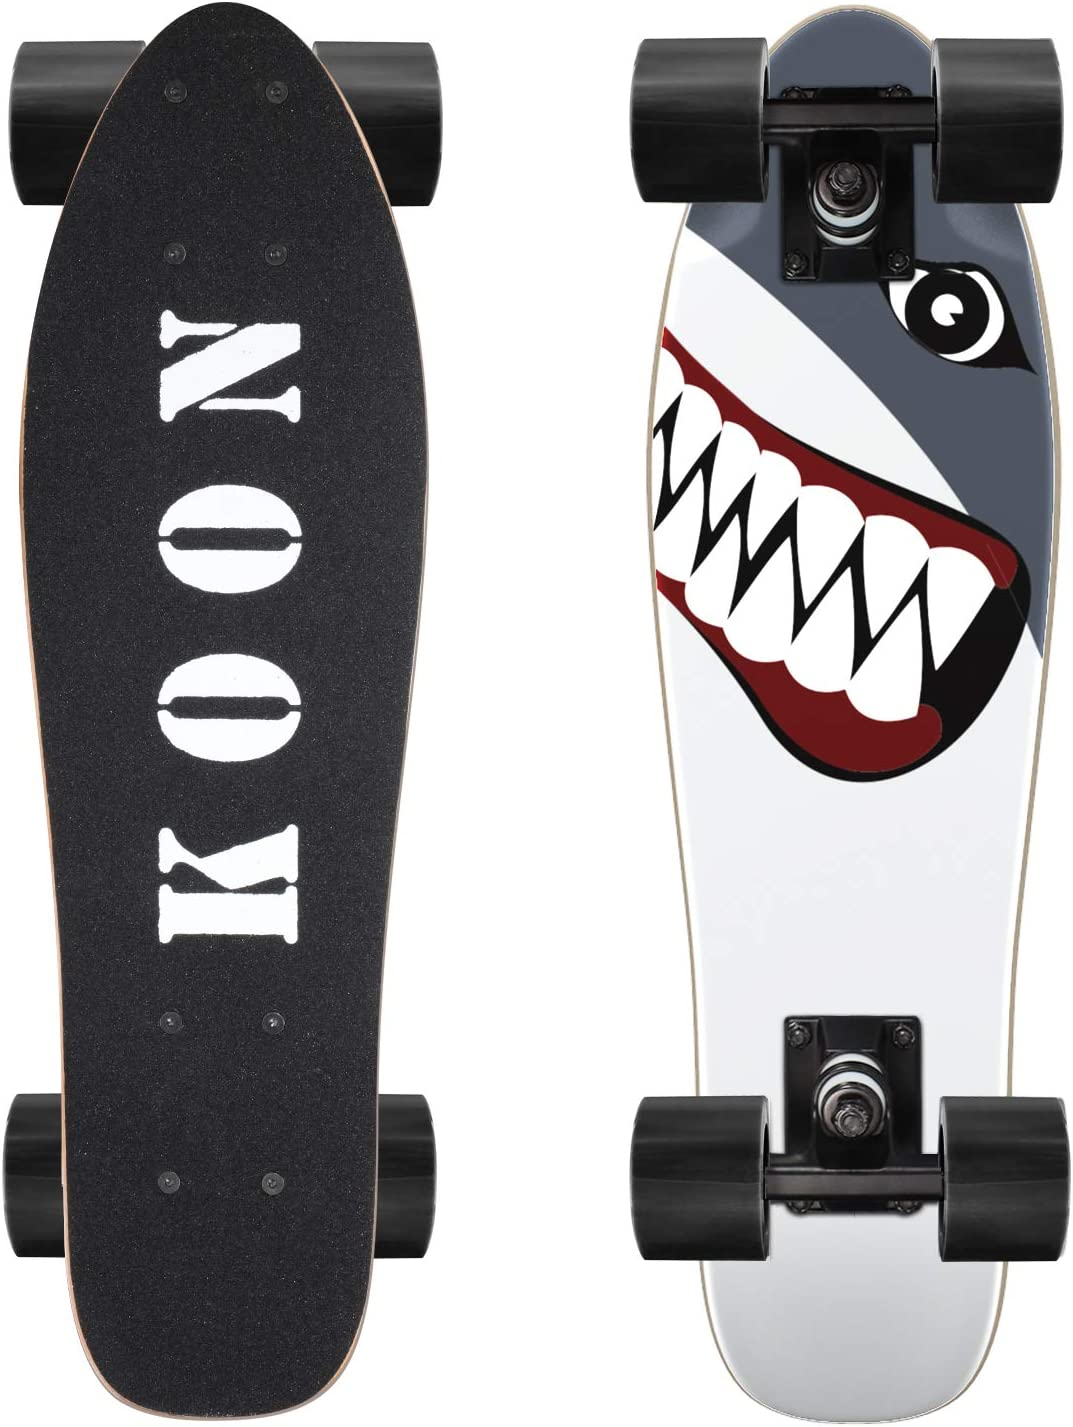 Ko-On 22 Inch Complete Mini Cruiser Skateboard for Beginners